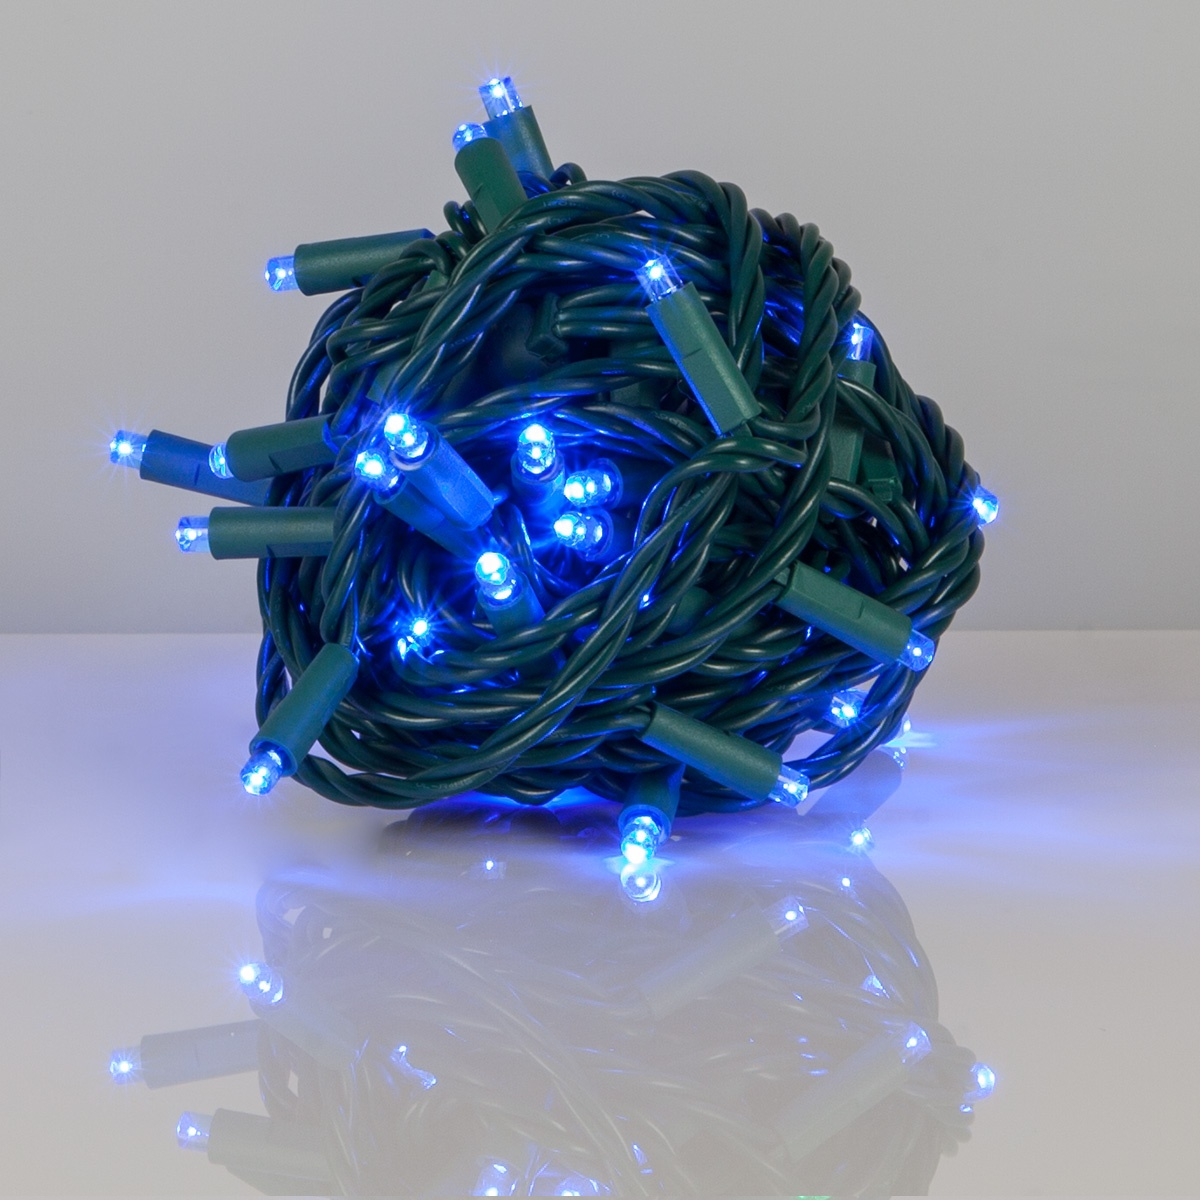 Wide Angle 5MM LED Lights - 50 Blue Outdoor LED Christmas ...